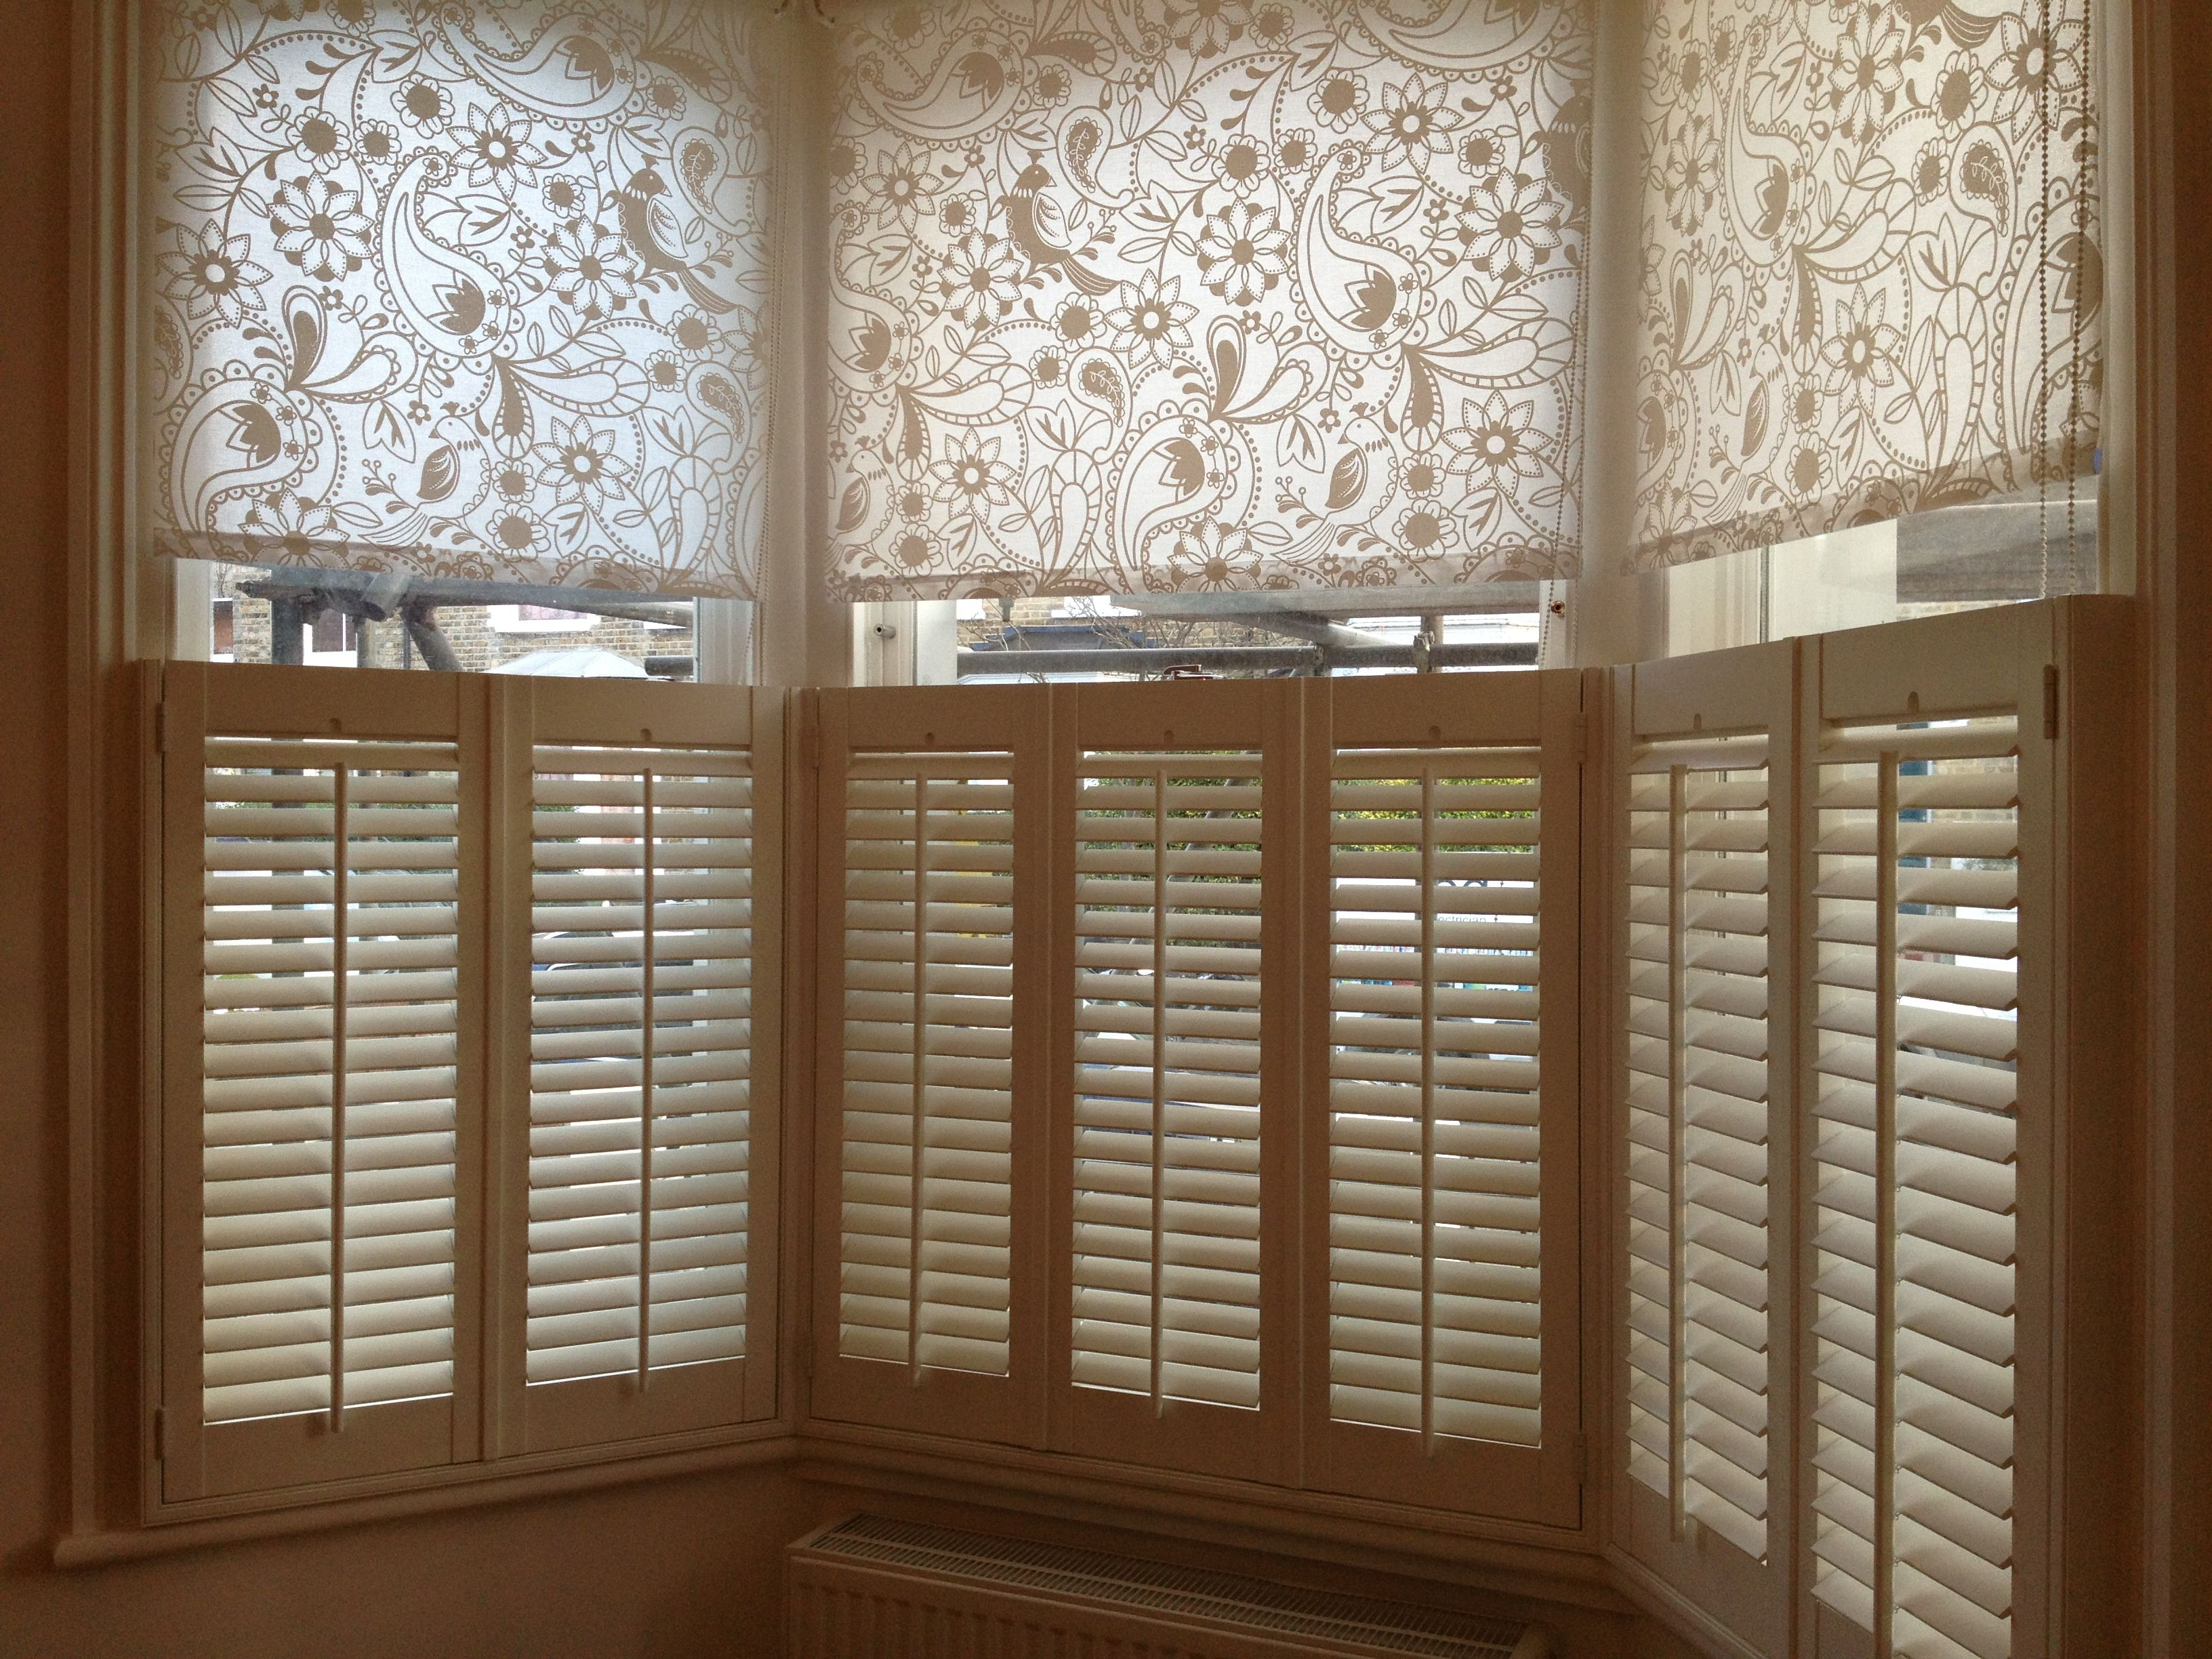 Cafe Style Shutters Only Partially Cover Your Window Usually The Bottom Half If Your Room Is In A Cafe Style Shutters Rustic Farmhouse Living Room Cafe Style